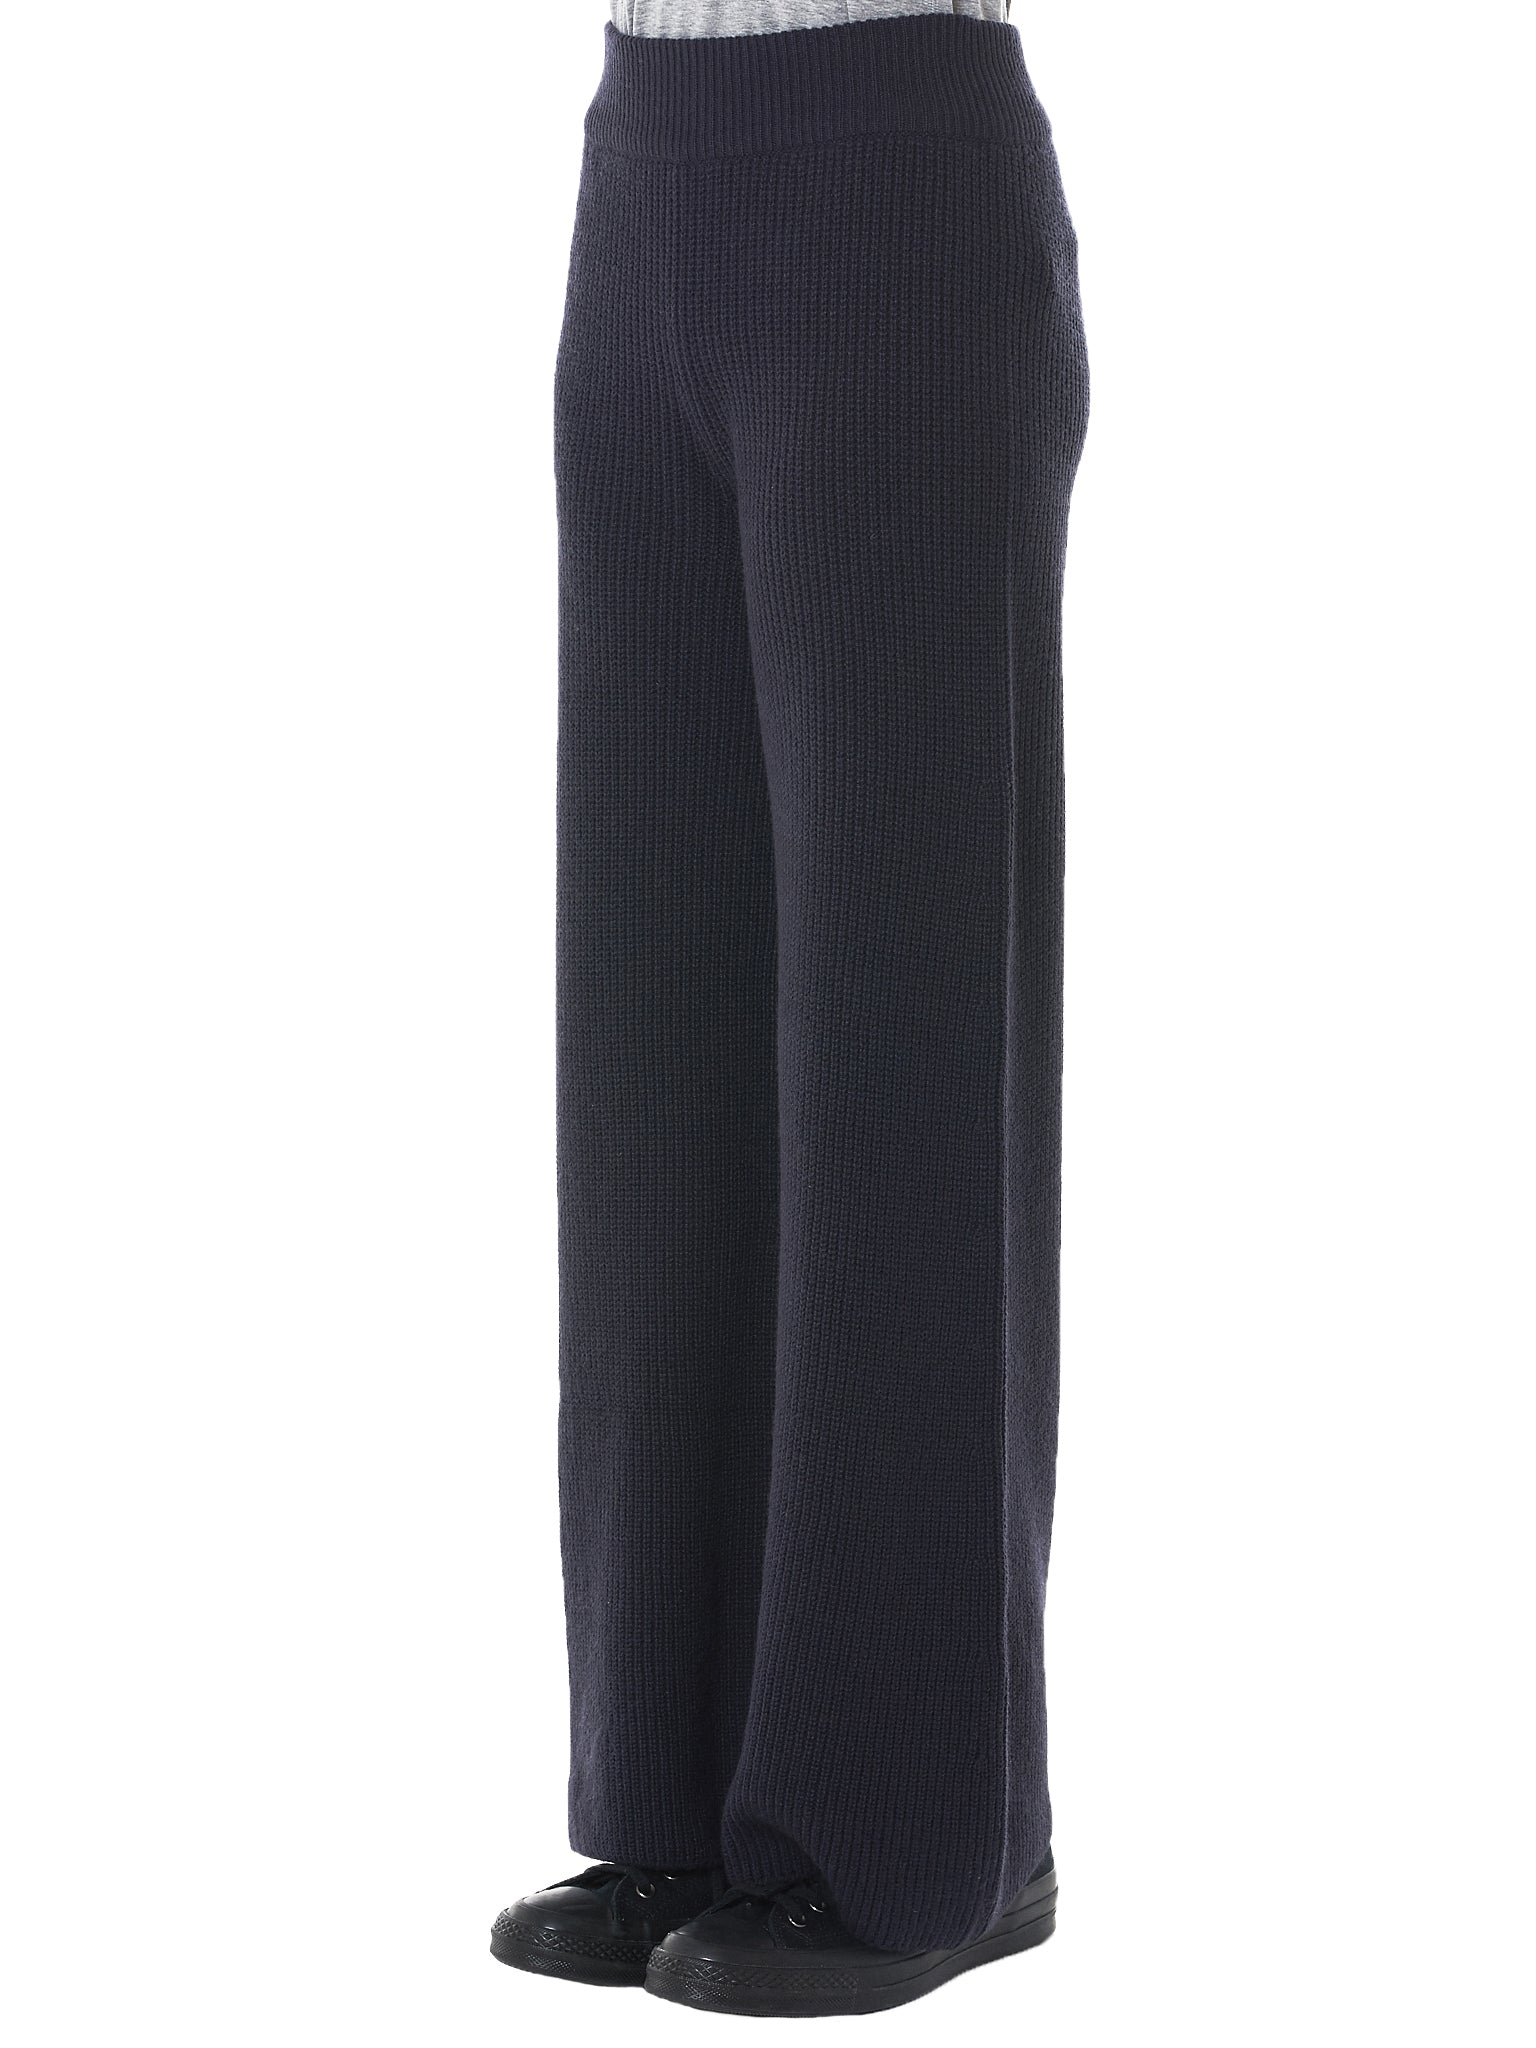 Cortina Cashmere Knit Pants (AW3KP001-ANTIQUE-INDIGO)